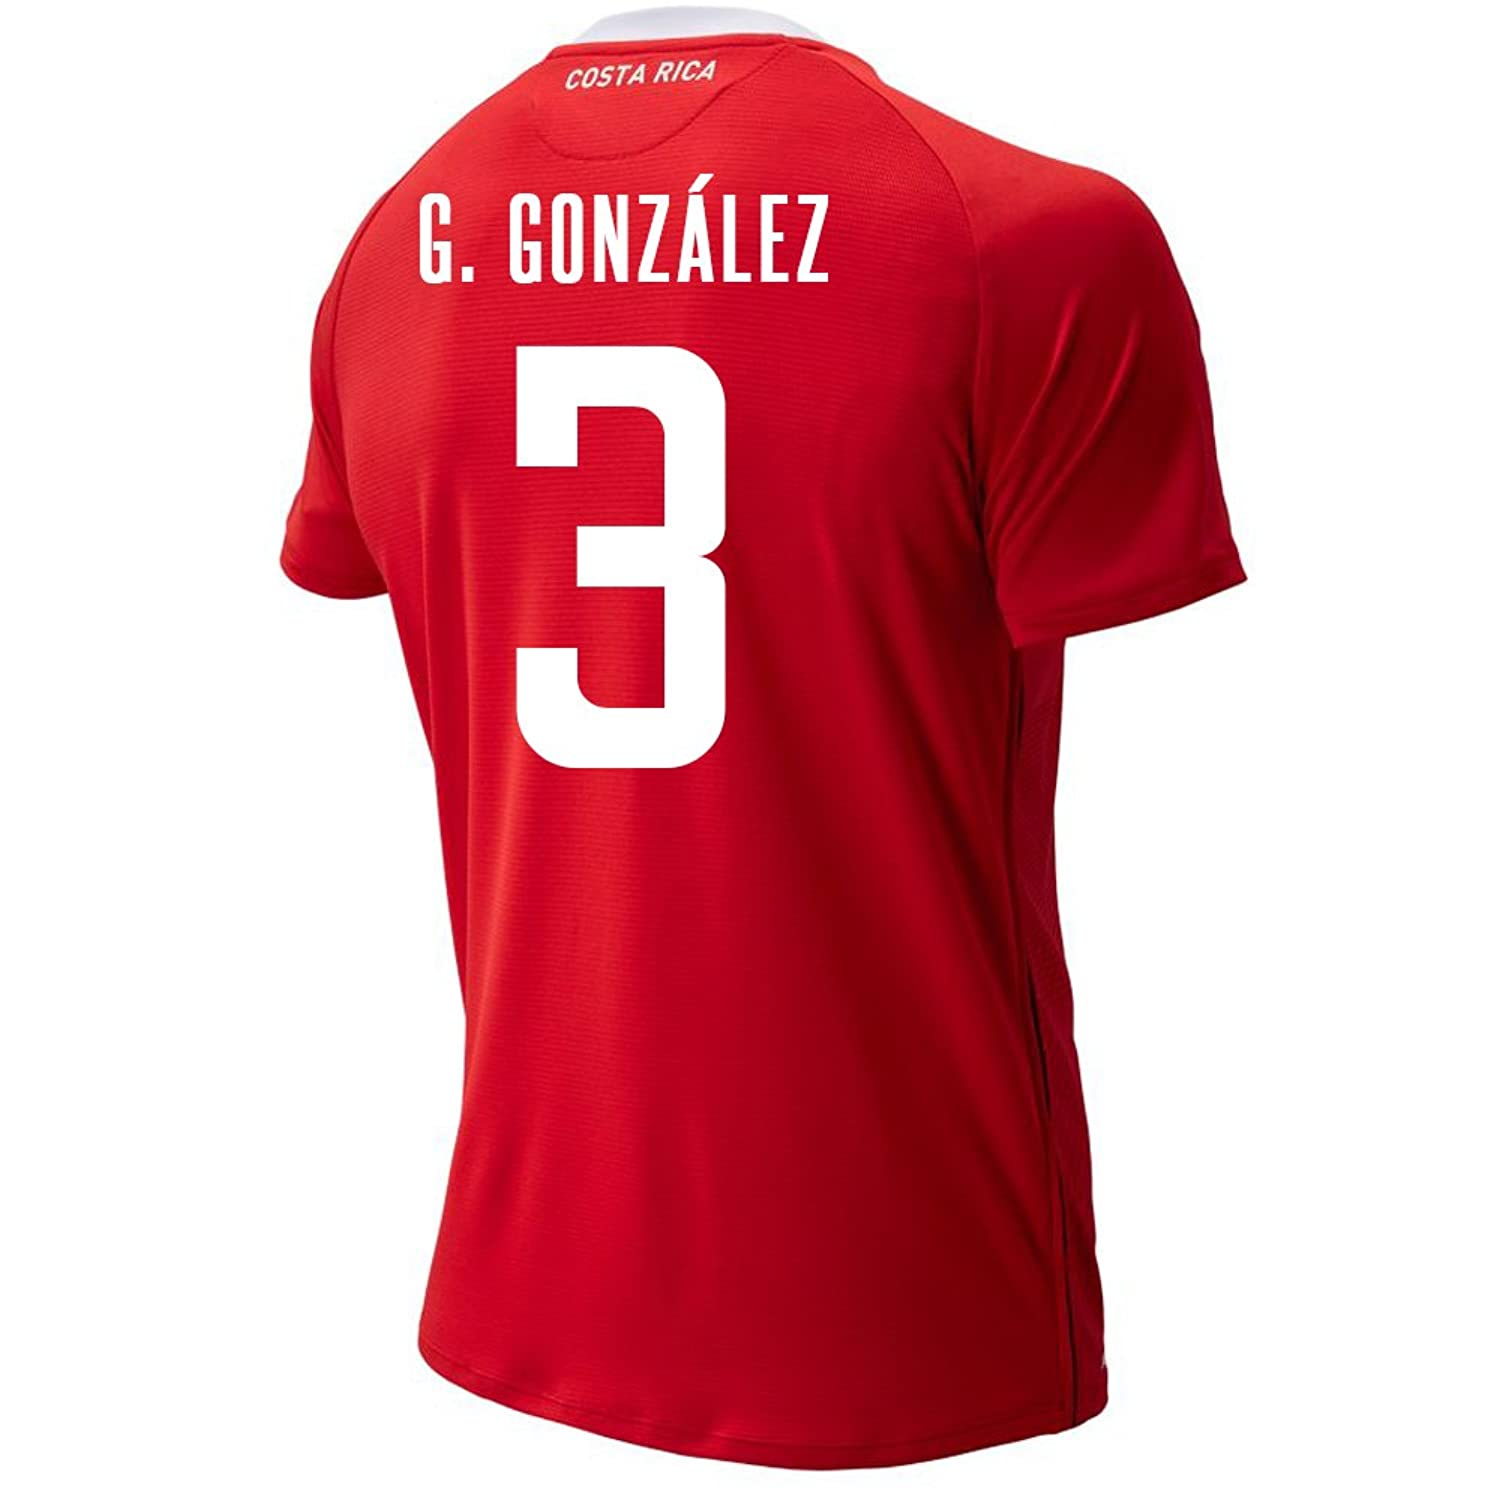 New Balance Men's G. Gonzalez #3 Costa Rica Home Soccer Jersey FIFA World Cup Russia 2018/サッカーユニフォーム コスタリカ ホーム用 ゴンサレス #3 B07CZ2D58W US Small